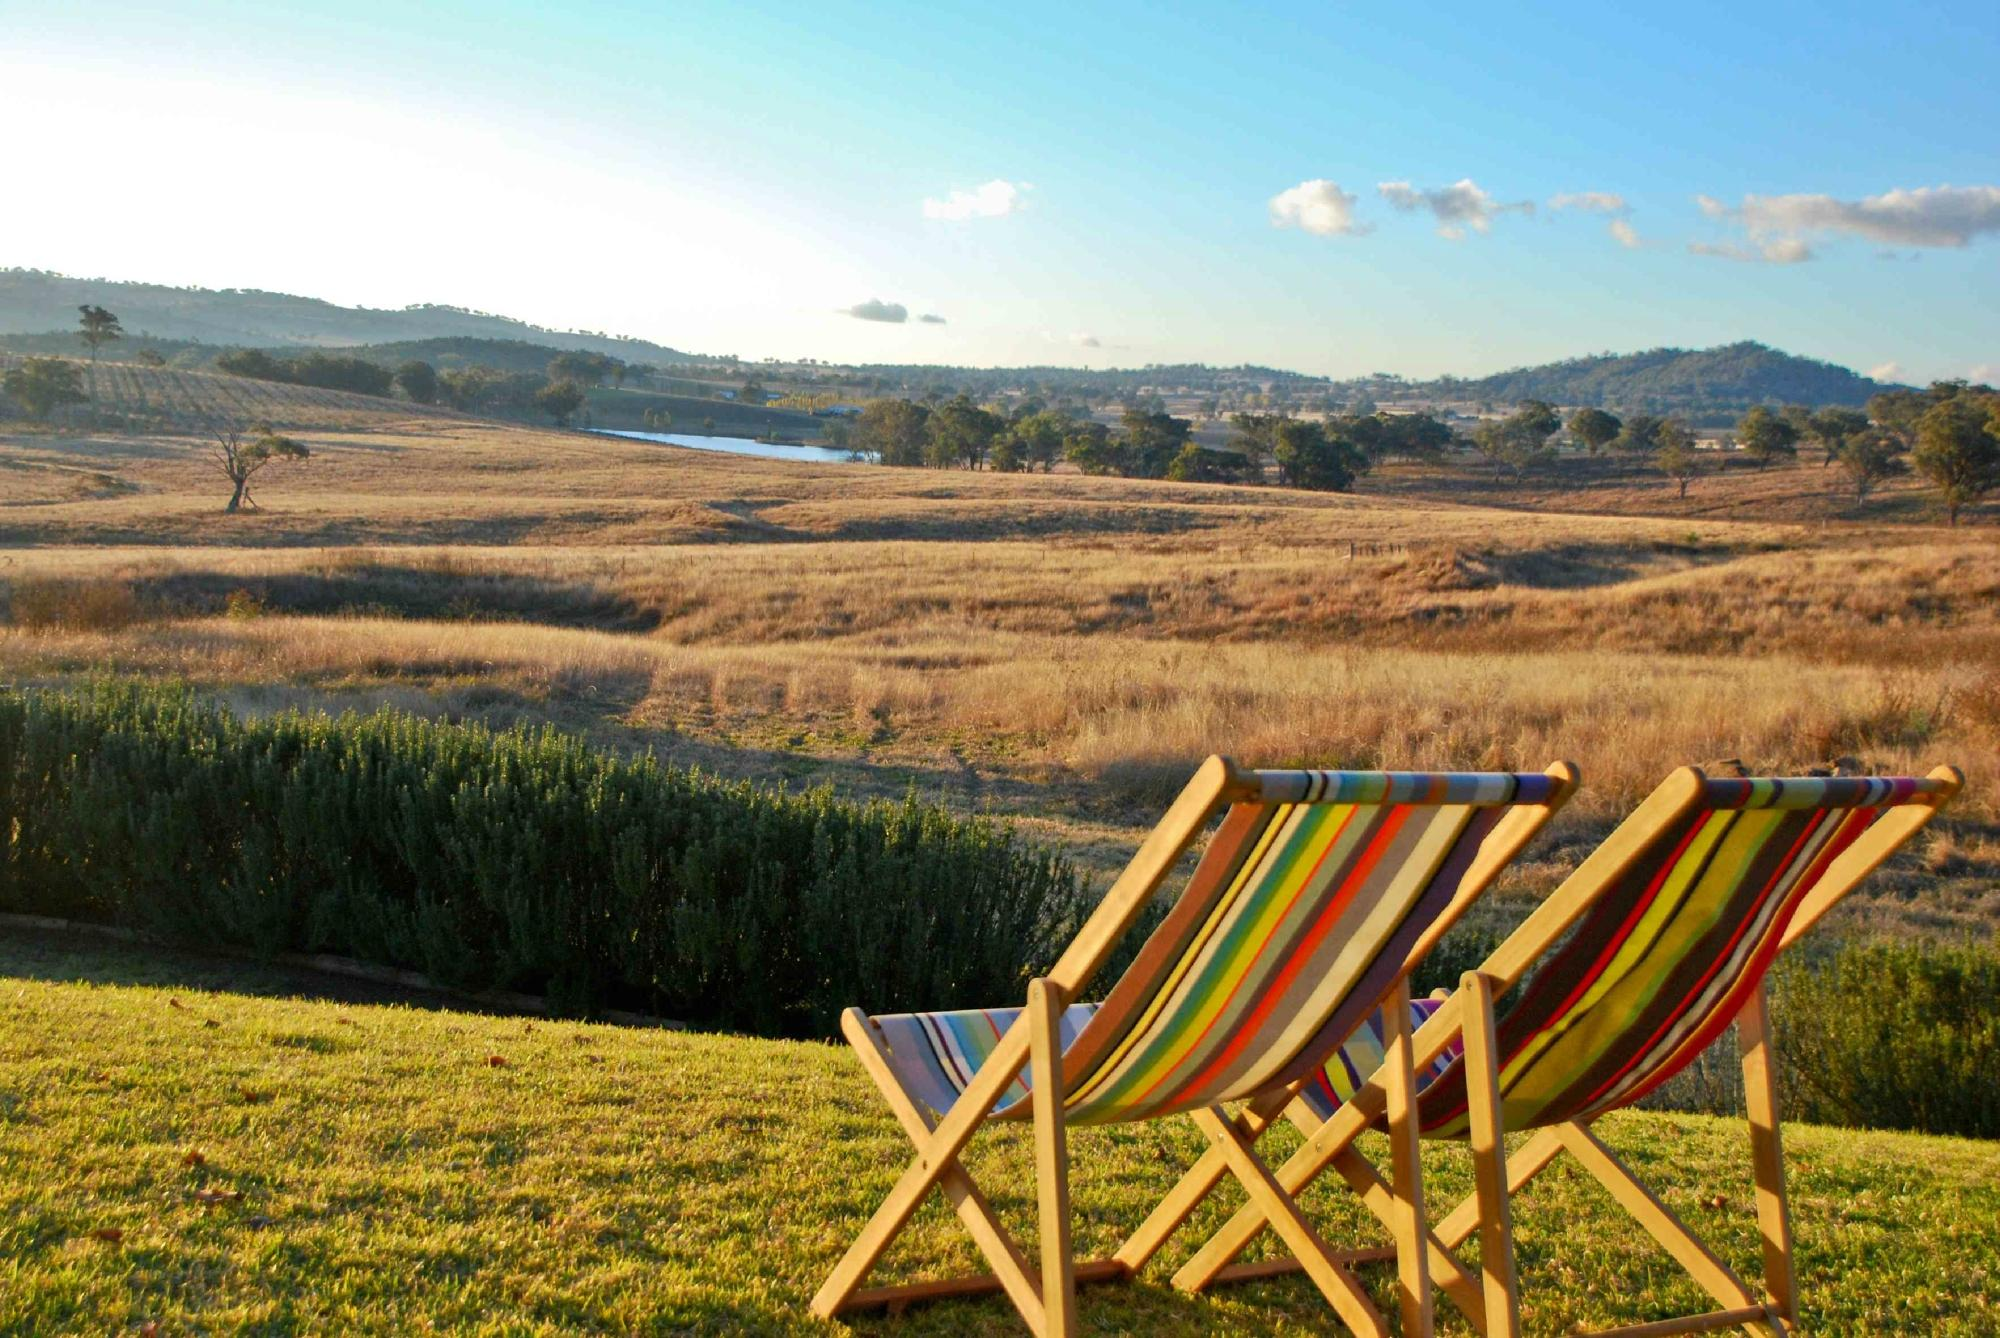 Two chairs set up looking over Mudgee scenery